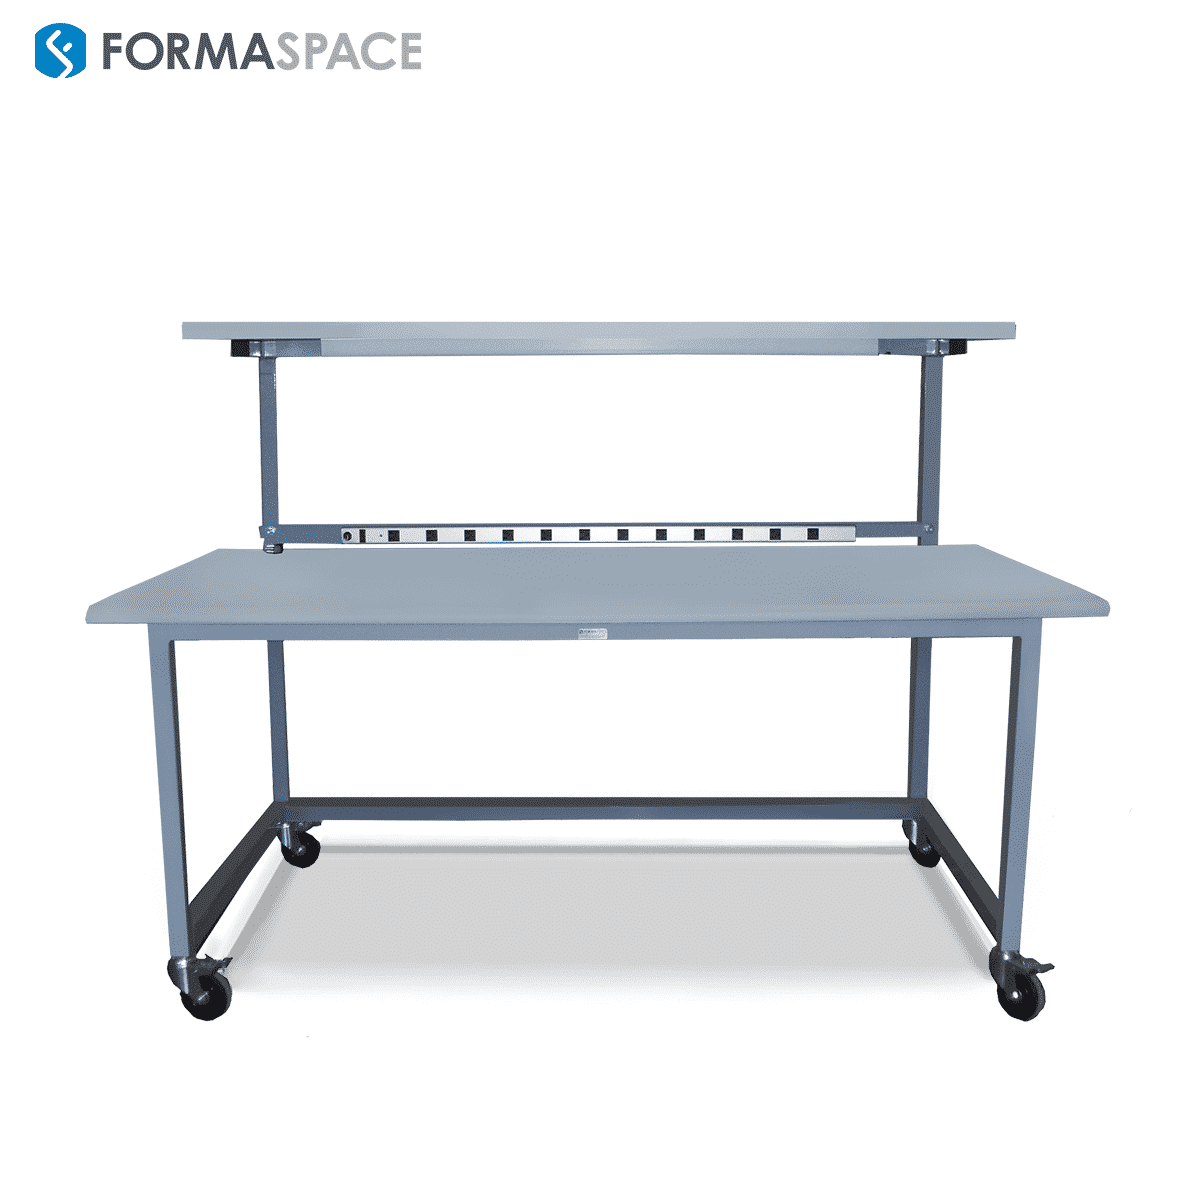 5.0 Bench Plus Product Maximizes Table Space